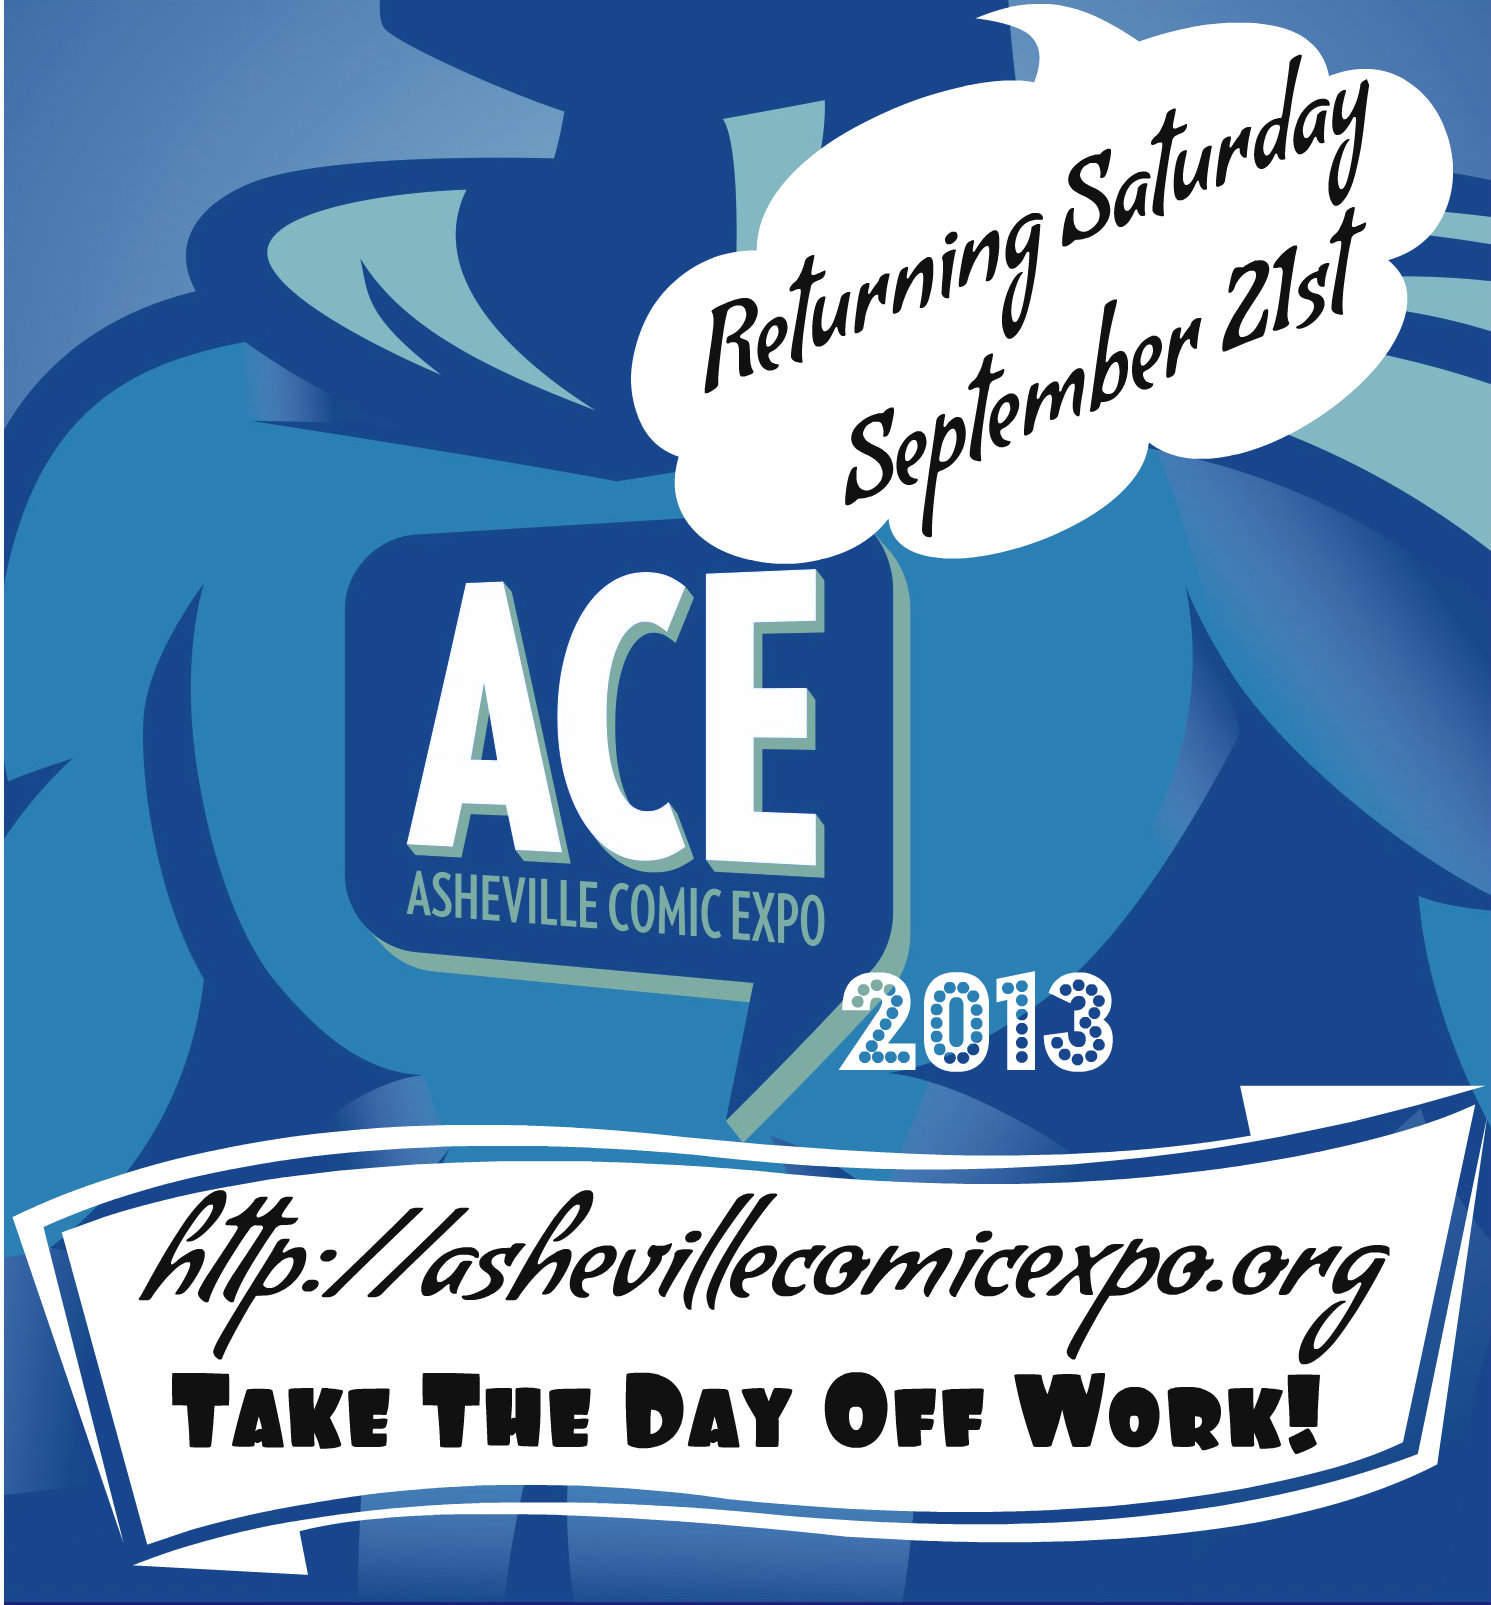 Free Comic Book Day Flyer: Asheville Comic Expo